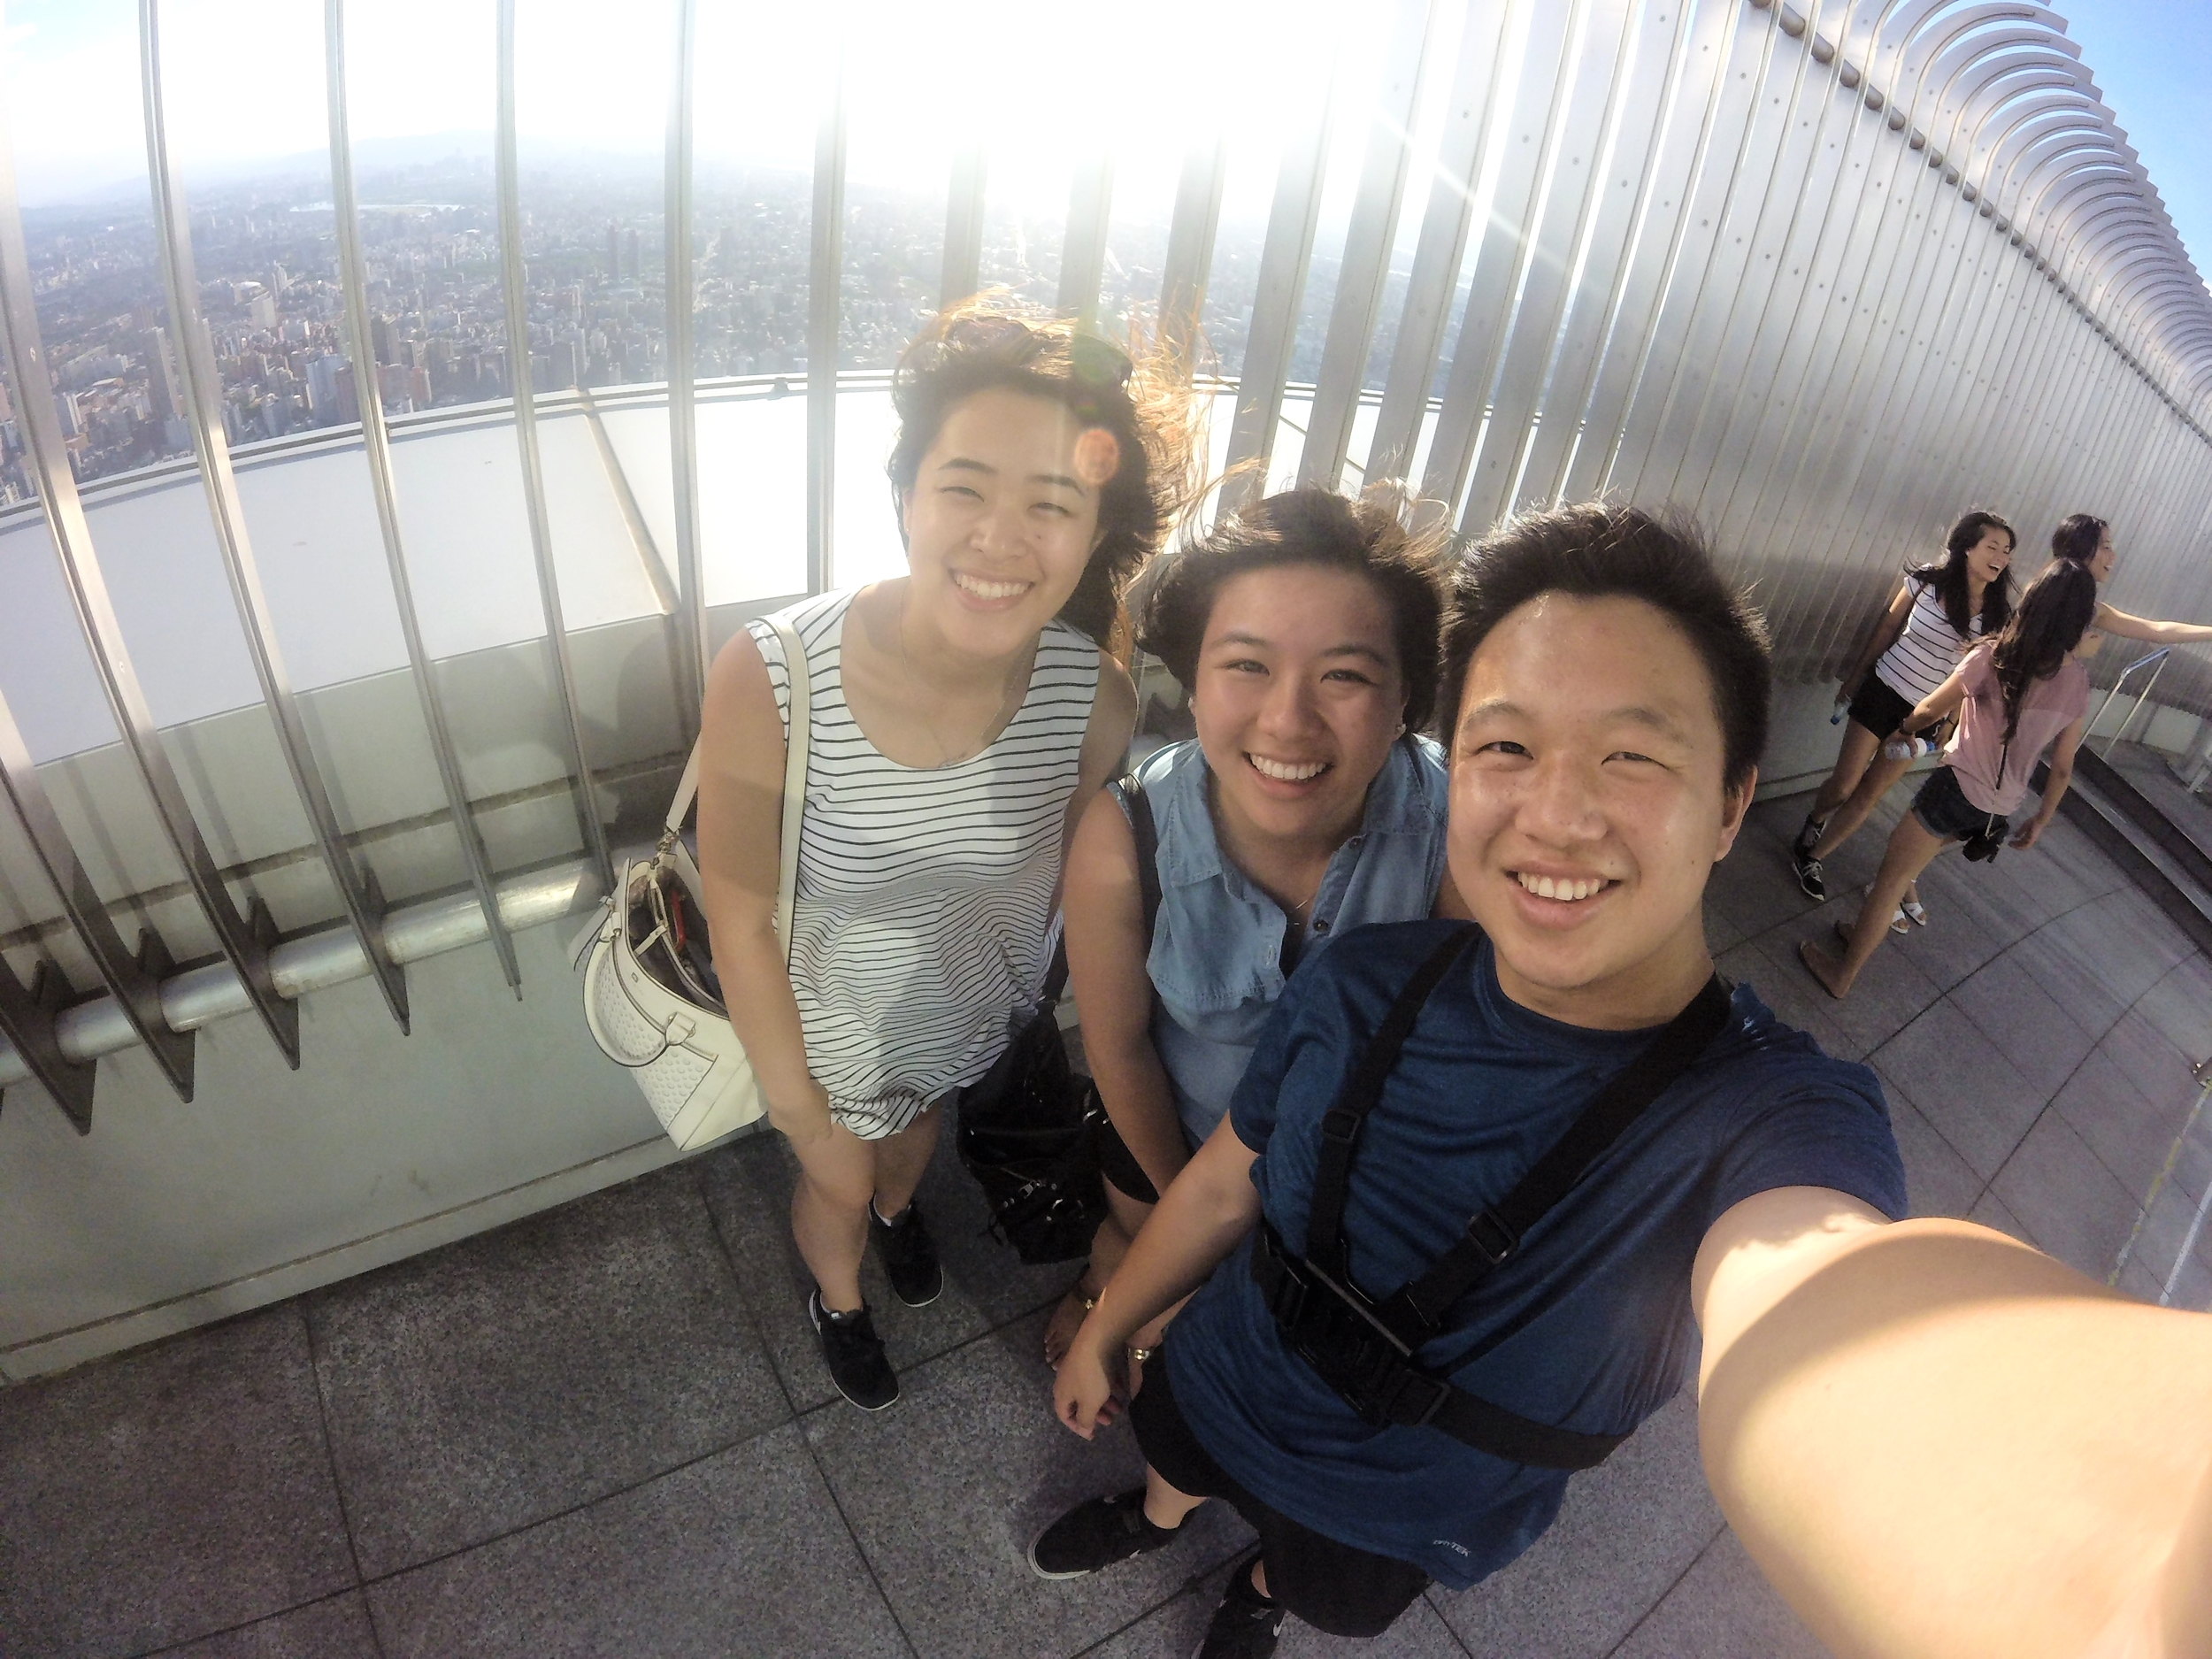 We had the opportunity to go on top of one of the world's tallest skyscrapers, Taipei 101!